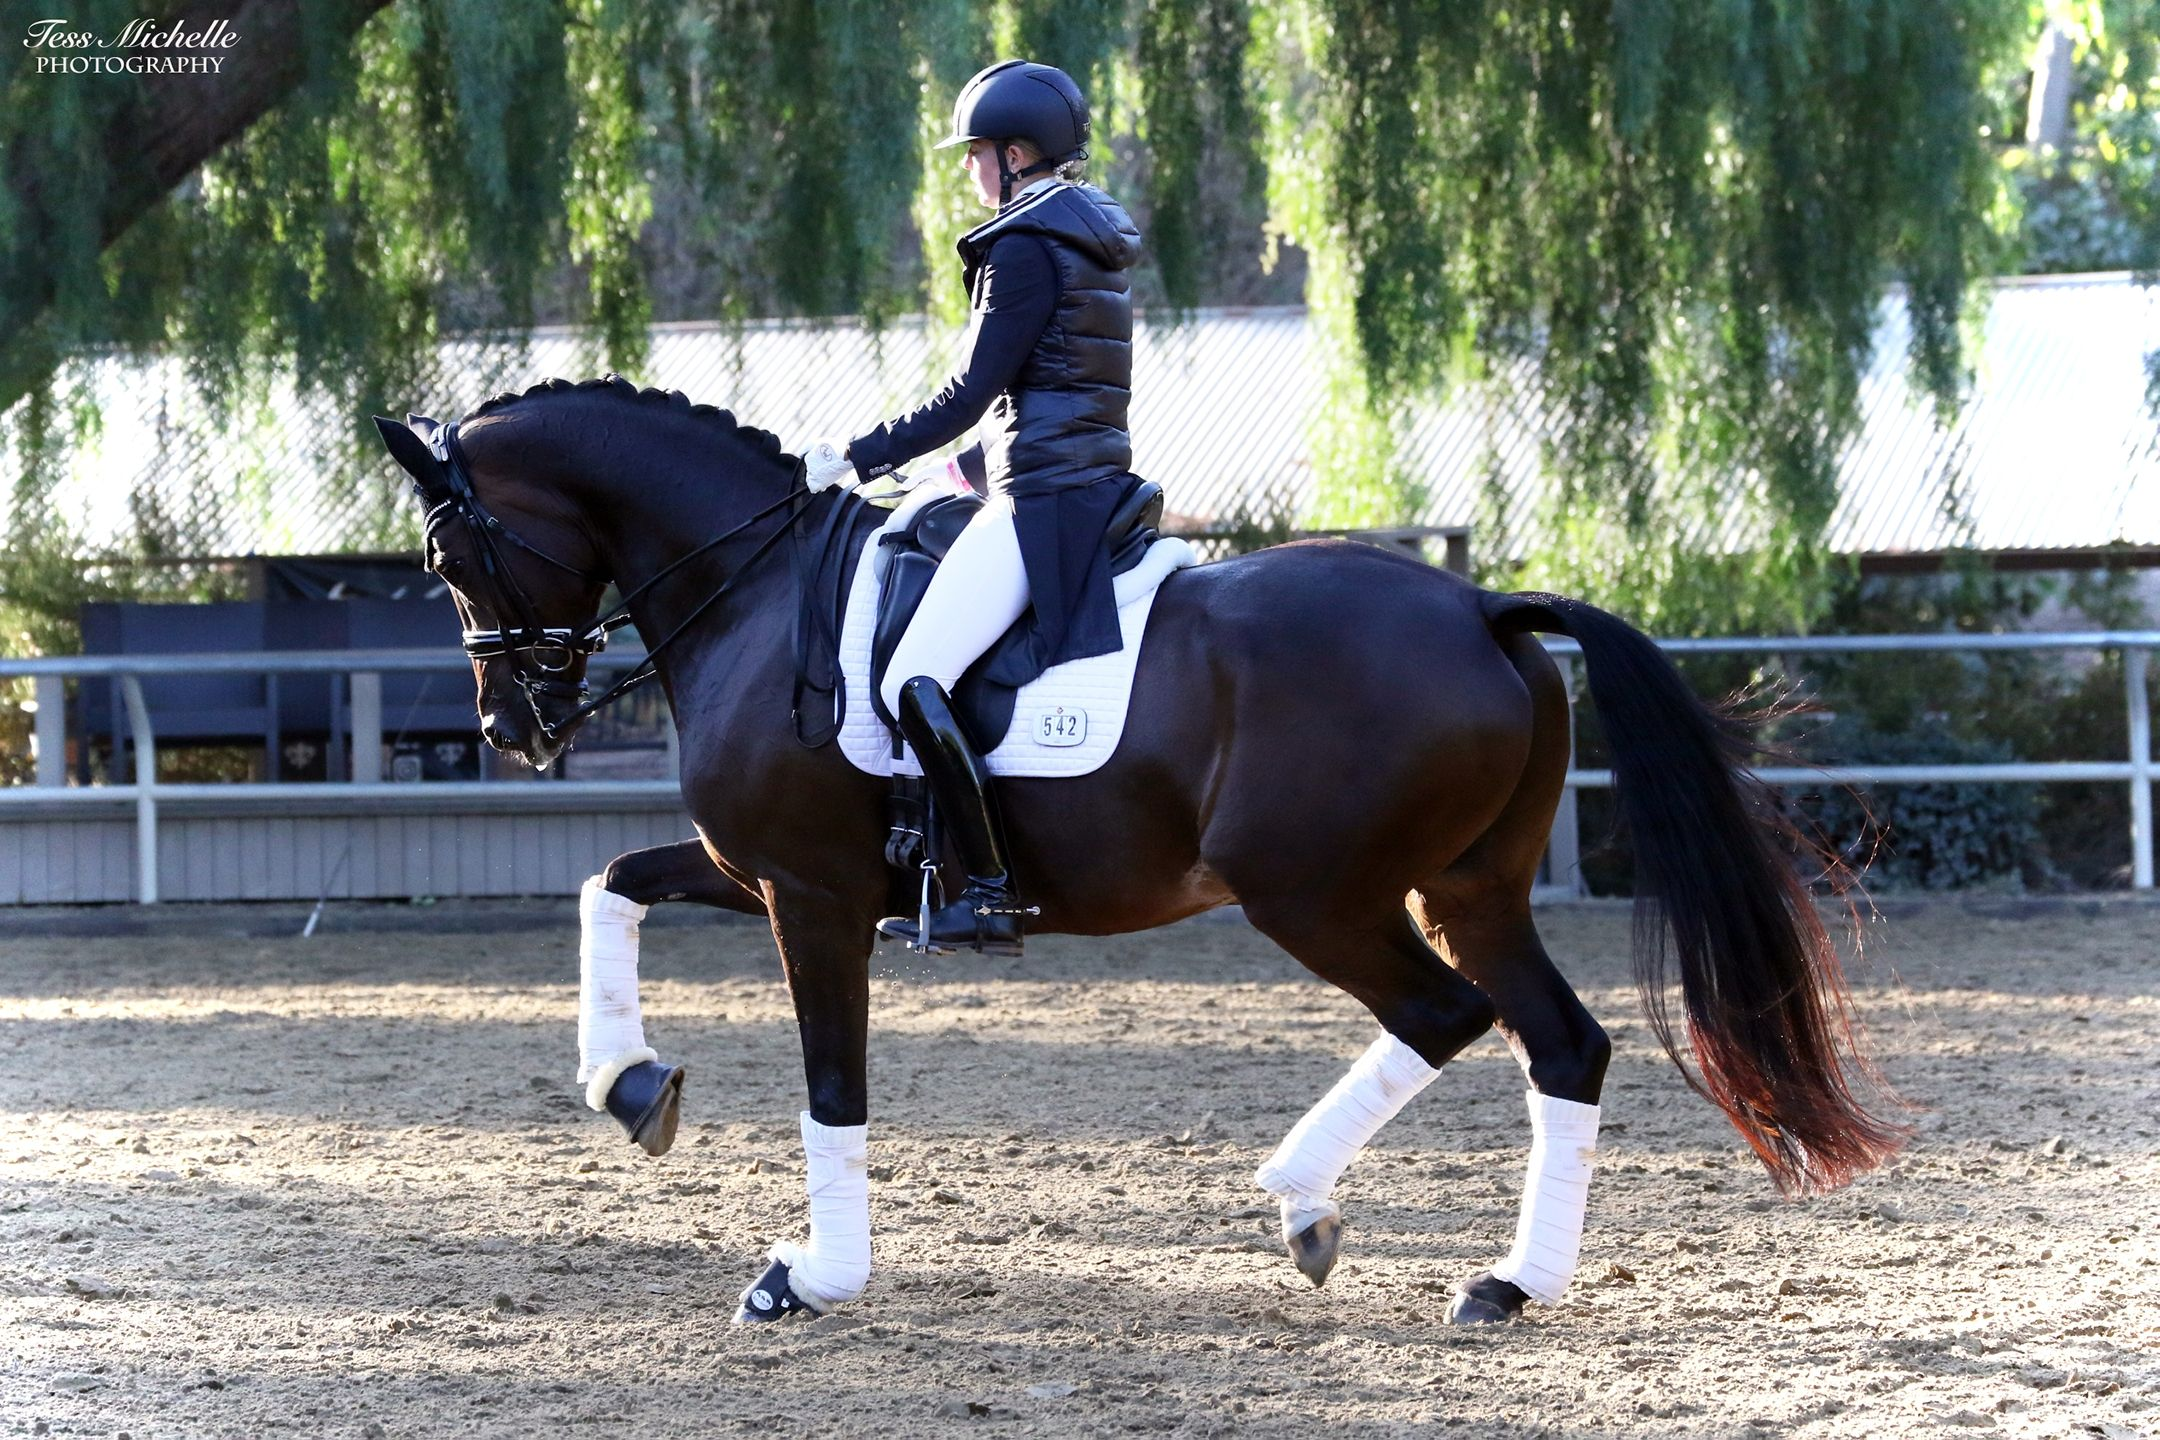 Carly Taylor-Smith and Rosalut NHF Awarded  $25,000 Anne L. Barlow Ramsay Grant From The Dressage Foundation